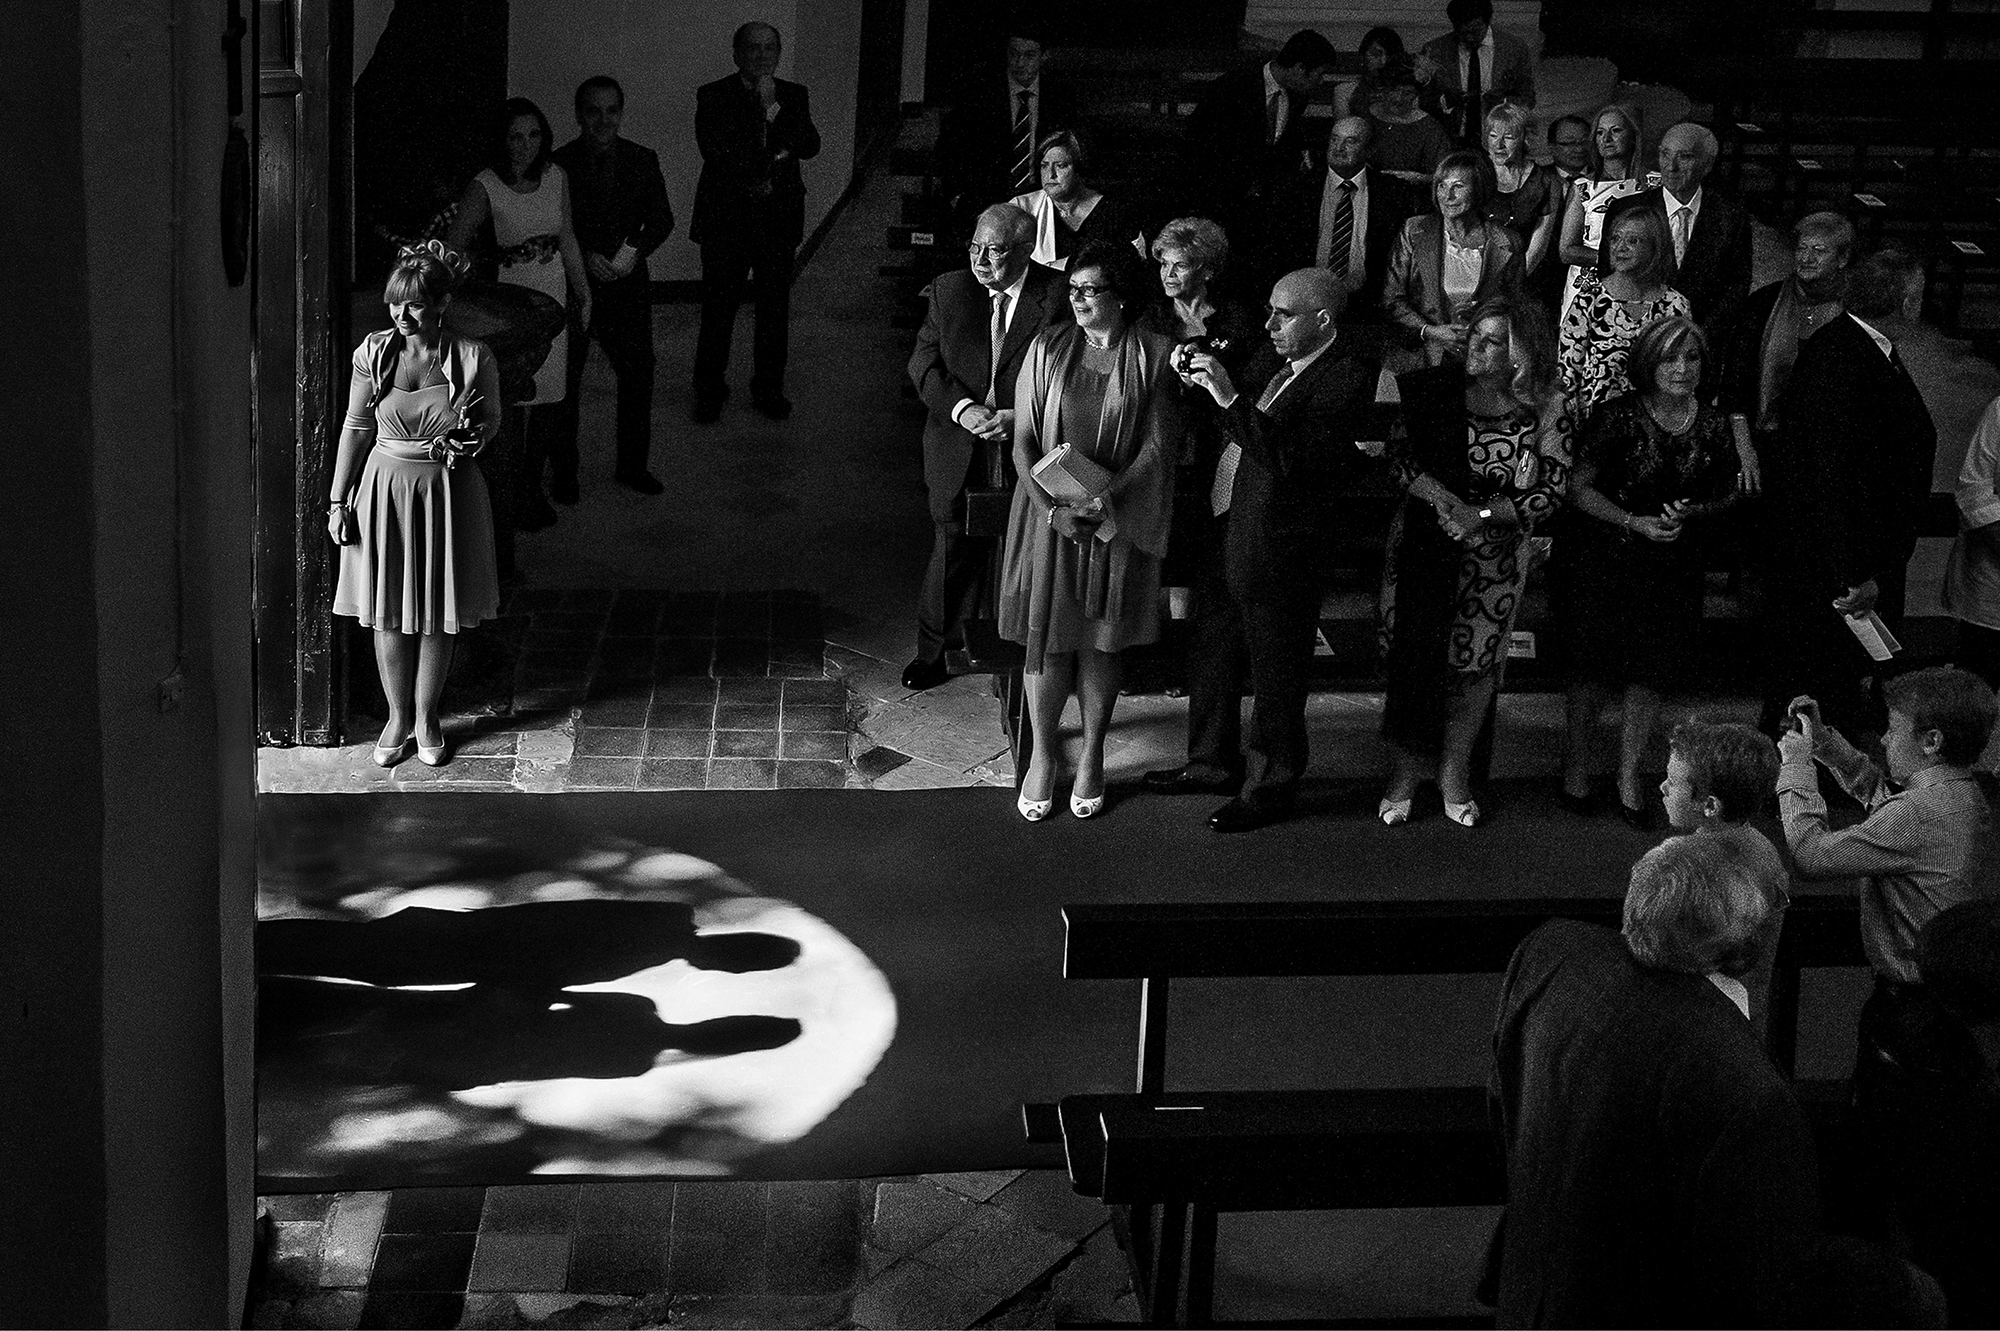 creative-black-and-white-shadows-of-bride-and-dad-entering-church-worlds-best-wedding-photos-victor-lax-spain-wedding-photographers